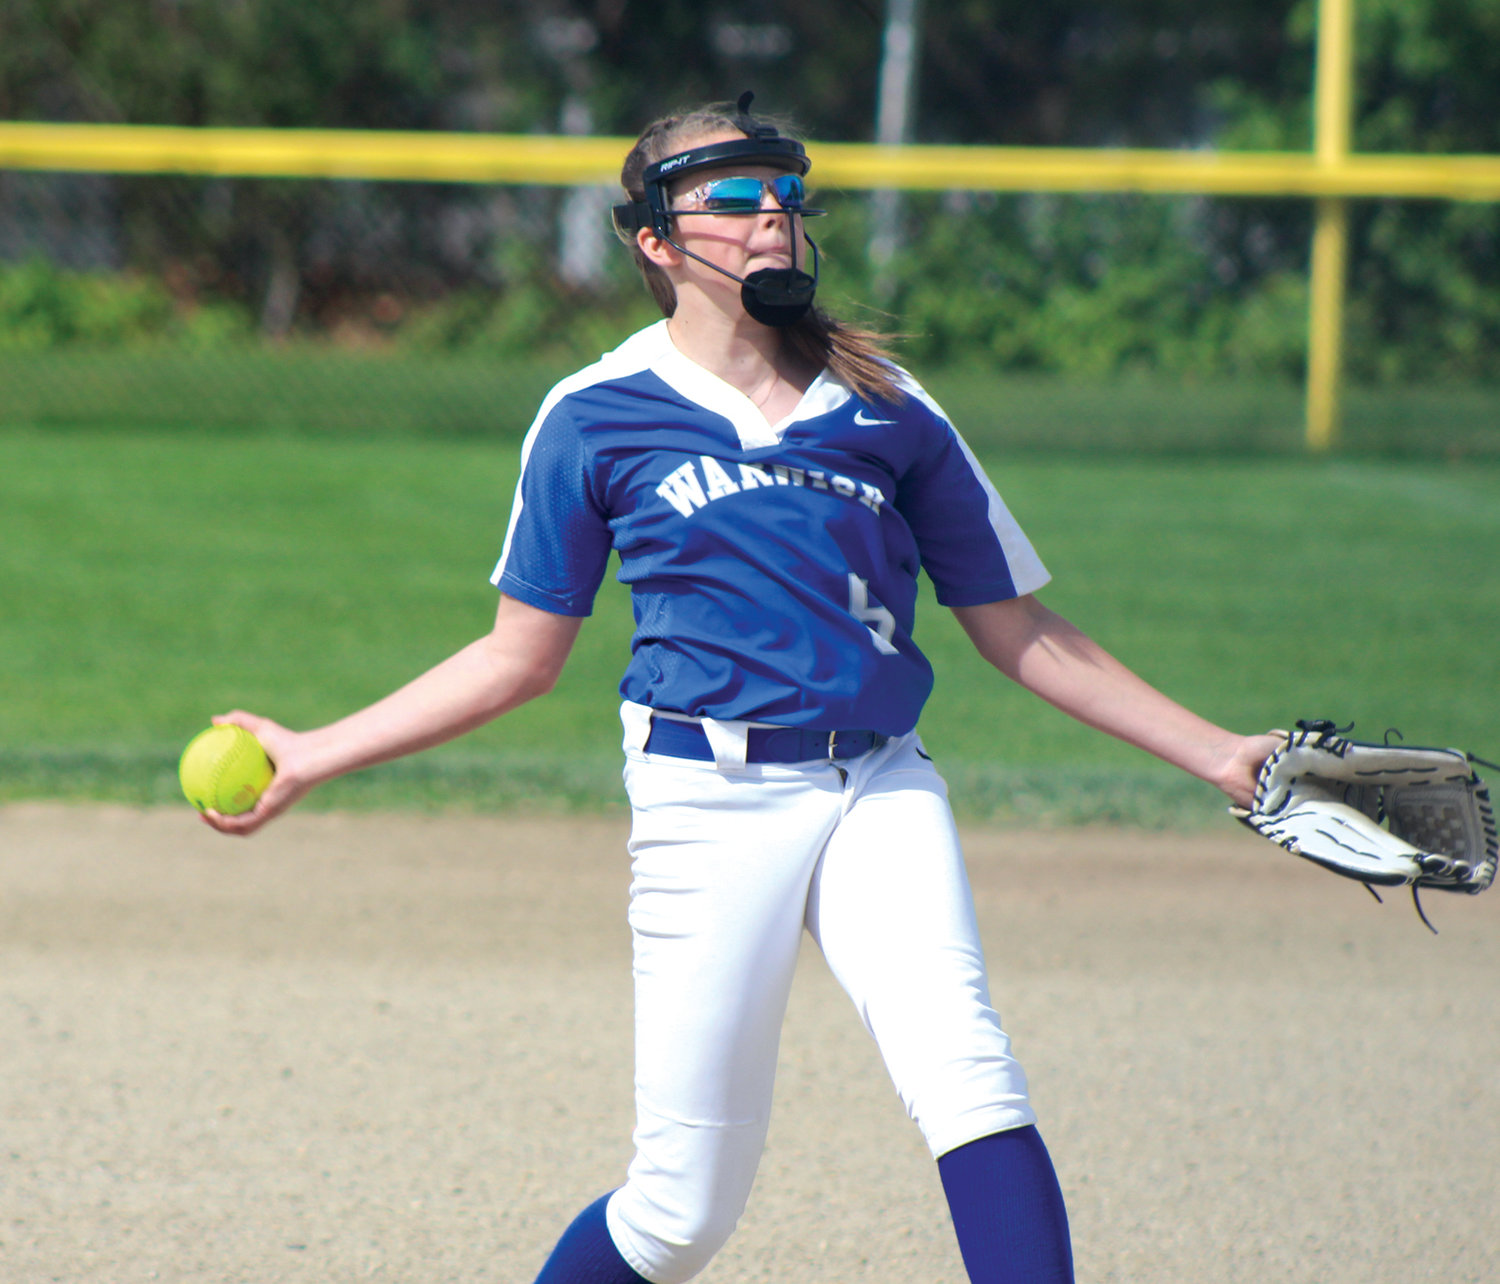 IN THE CIRCLE: Warwick Vets pitcher Alyssa Twomey delivers against Park View during the team's regular season finale at Vets last week. The Hurricanes have had a big 2019 spring, finishing the season undefeated and as the favorite to win the state championship next month at Rhode Island College.